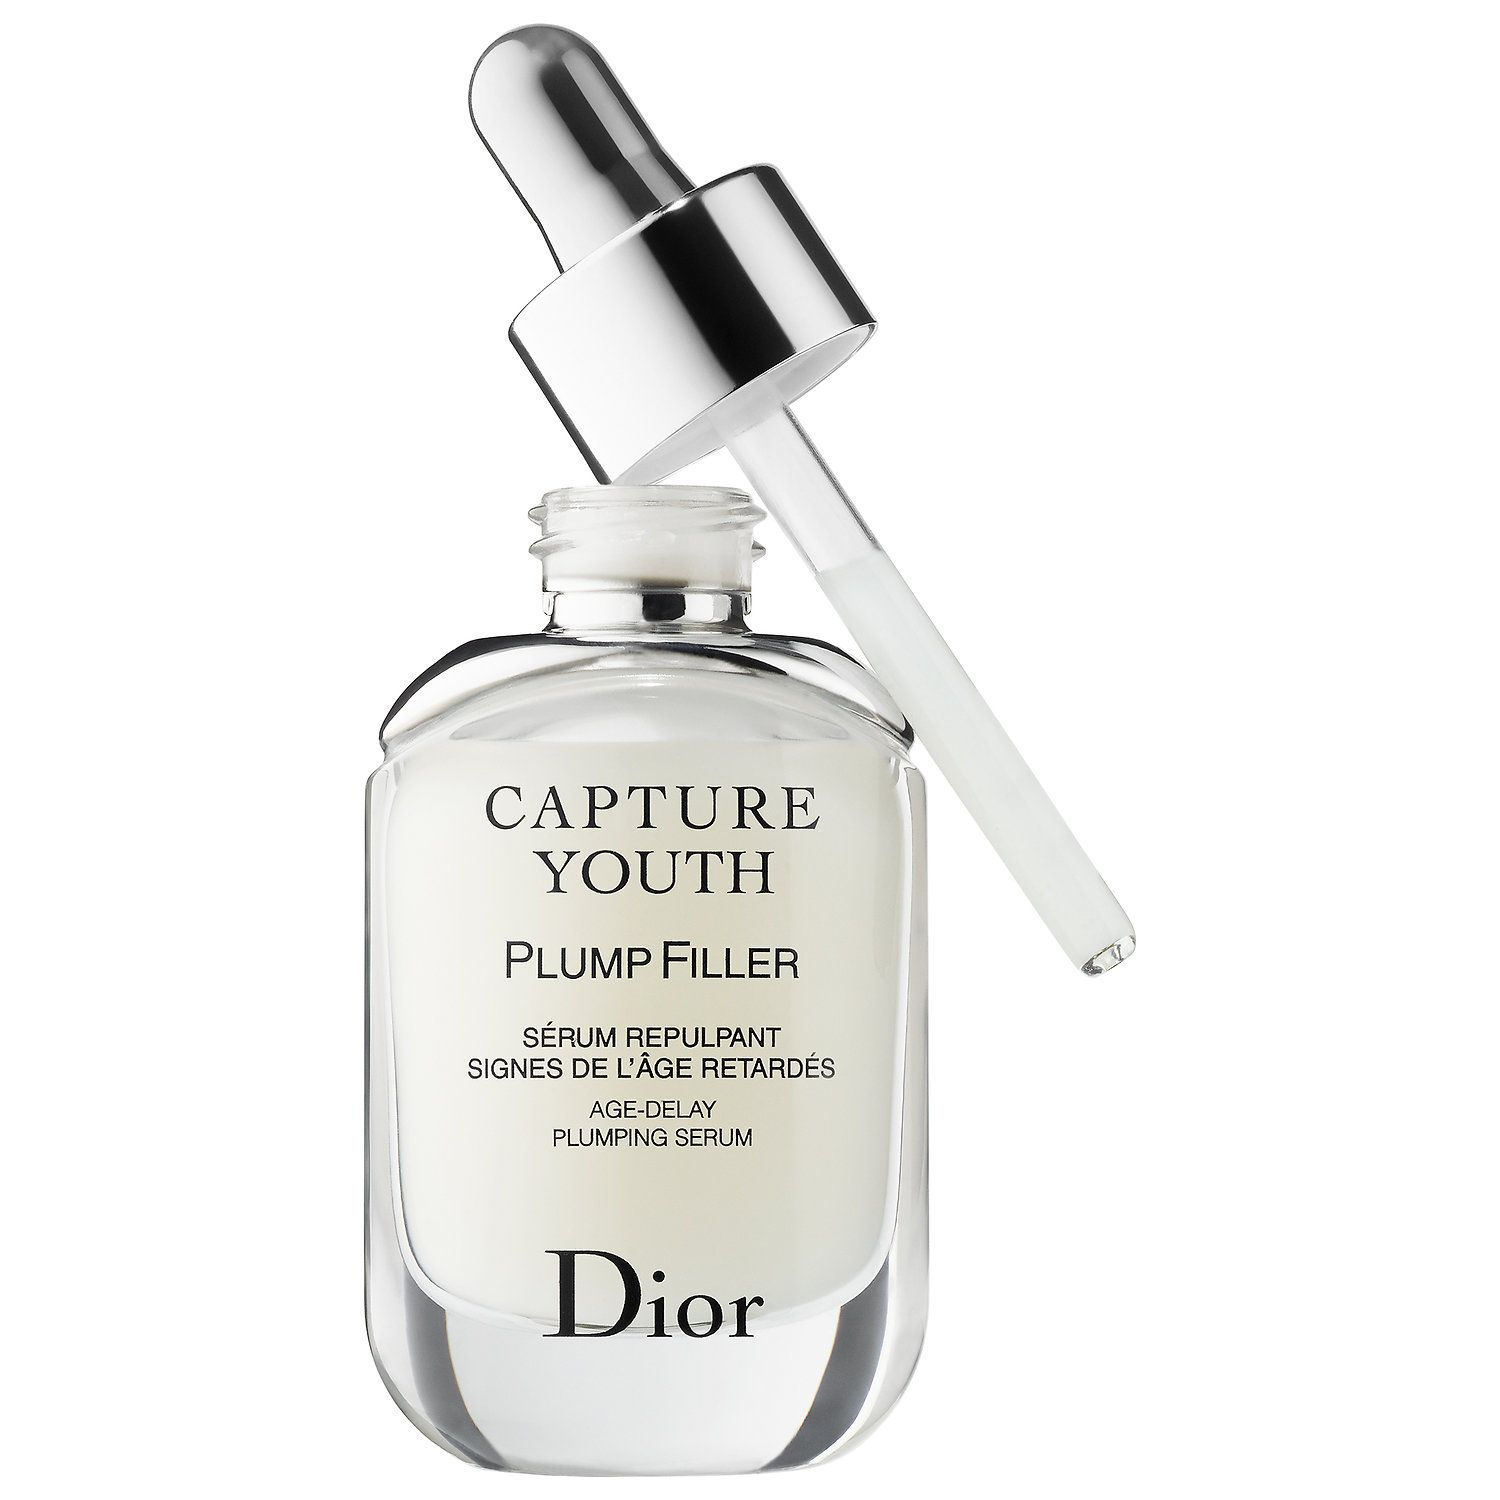 df56e592 Capture Youth Plump Filler Age-Delay Plumping Serum - Dior ...